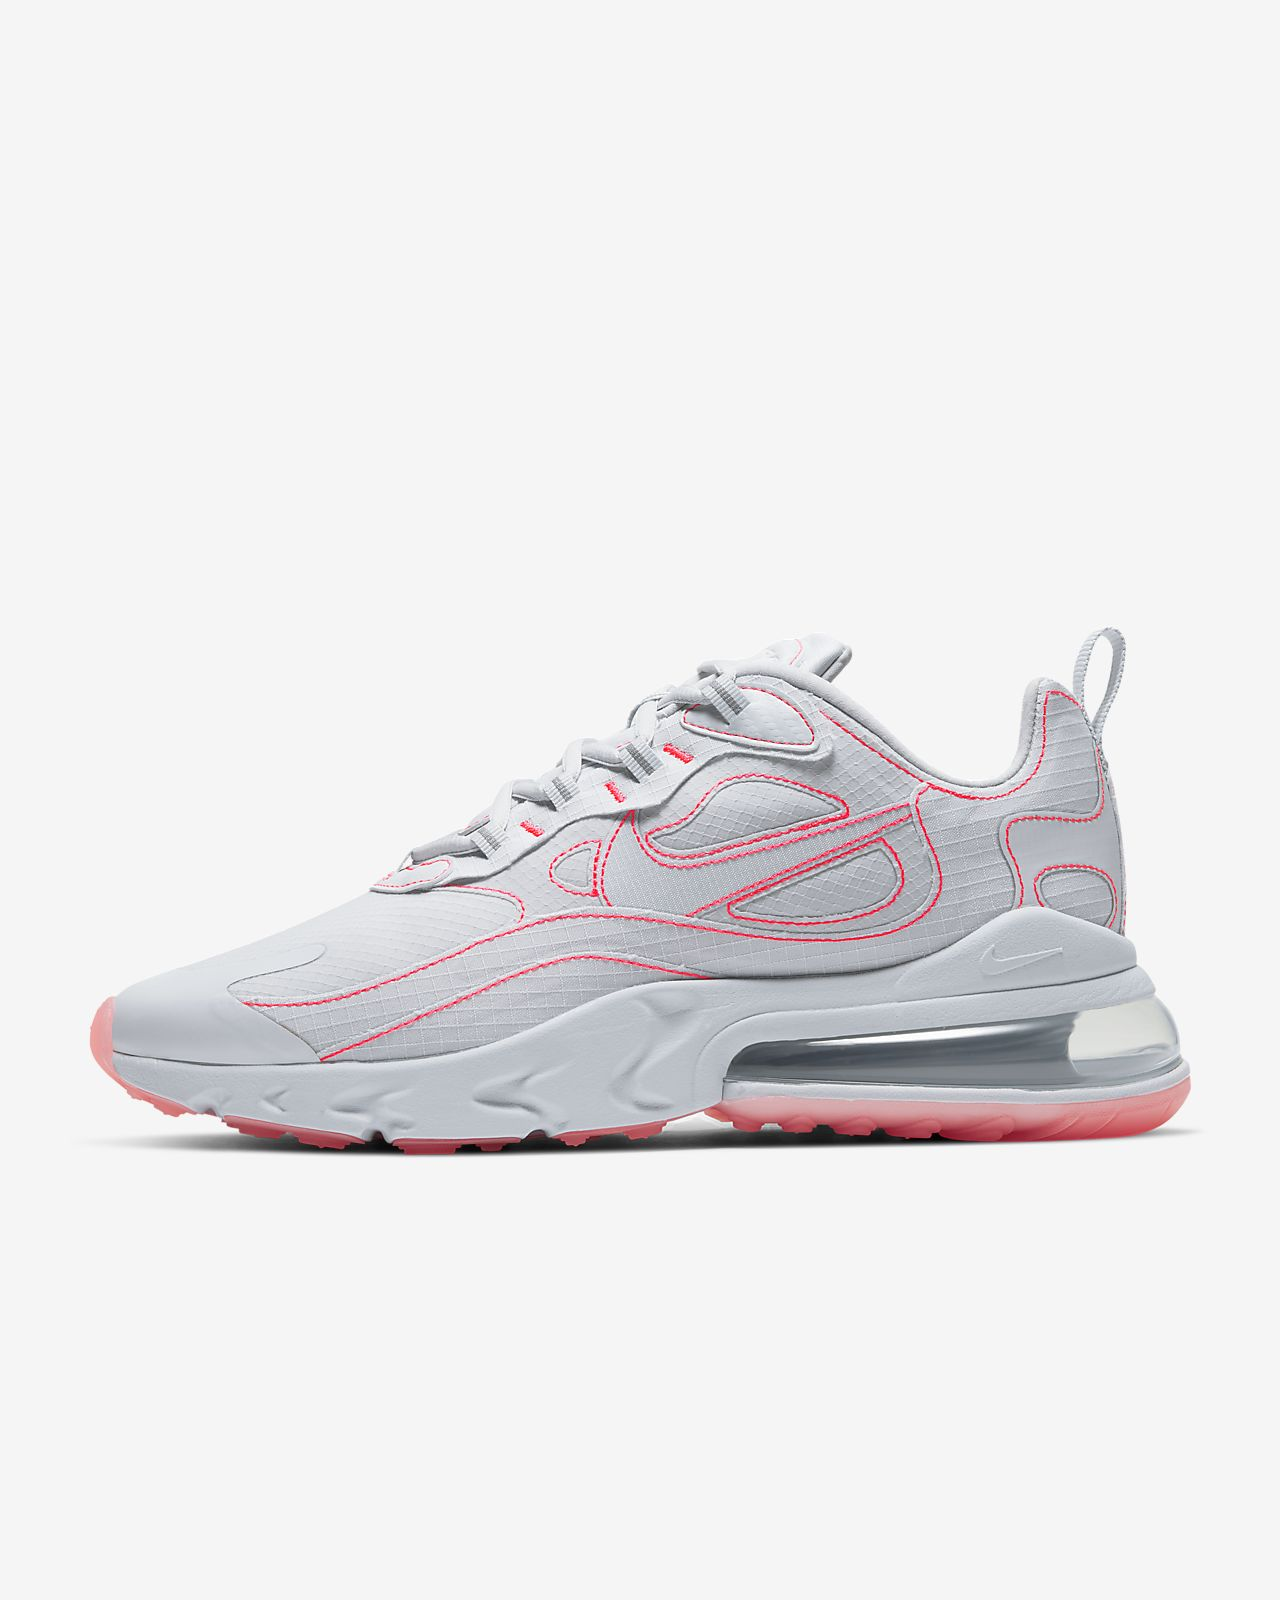 Nike Air Max 270 Special Edition 鞋款